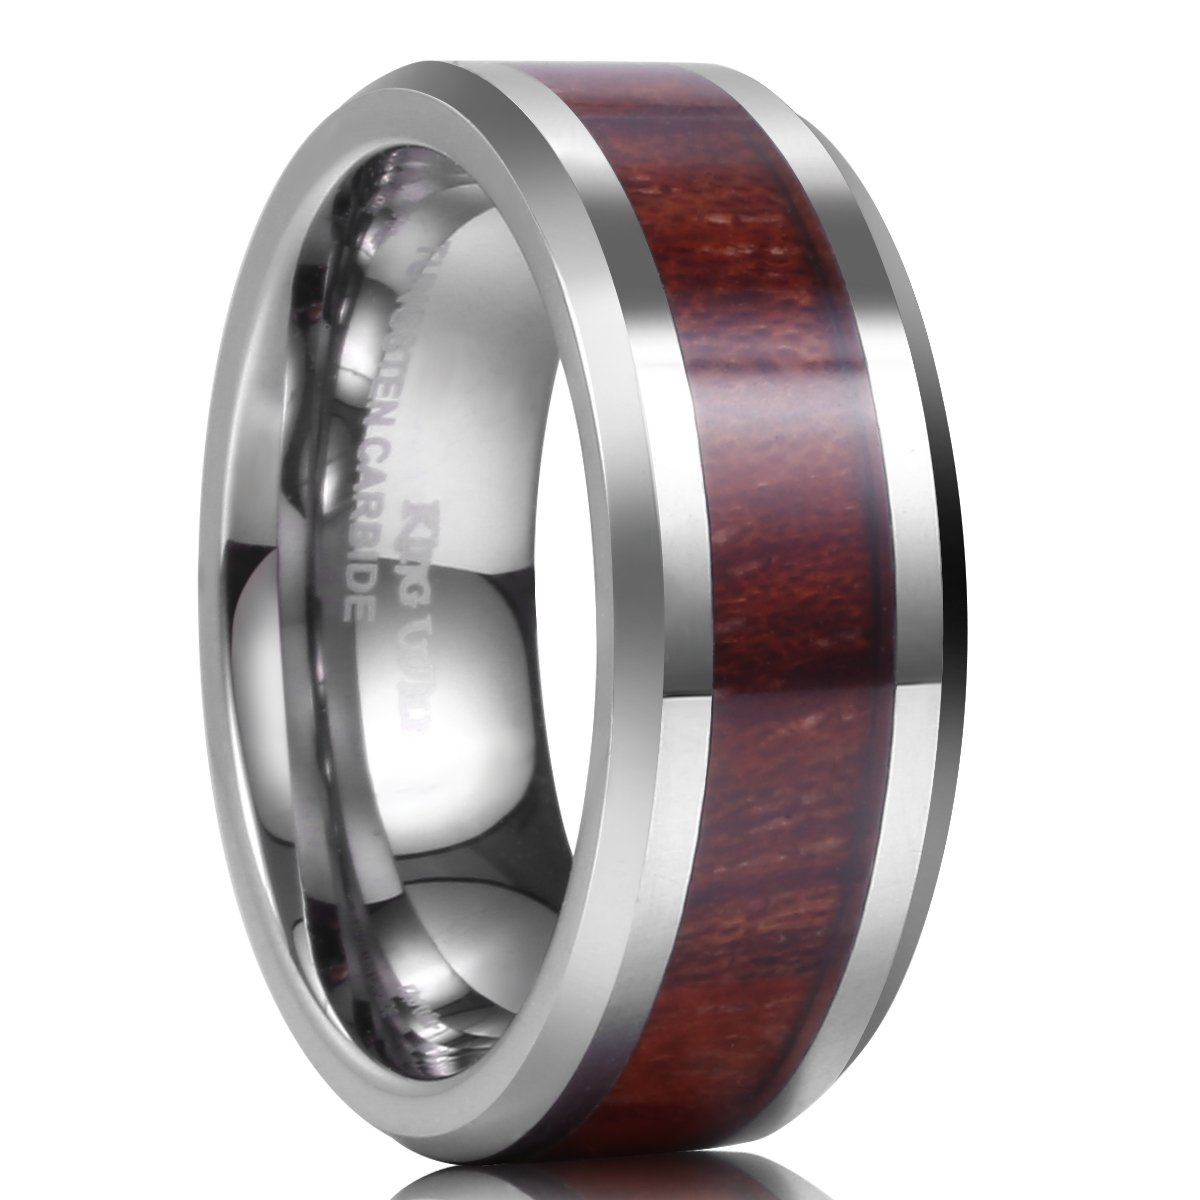 King Will NATURE 8mm Real Wood Tungsten Carbide Ring High Polished Wedding Band Comfort Fit OY-R161